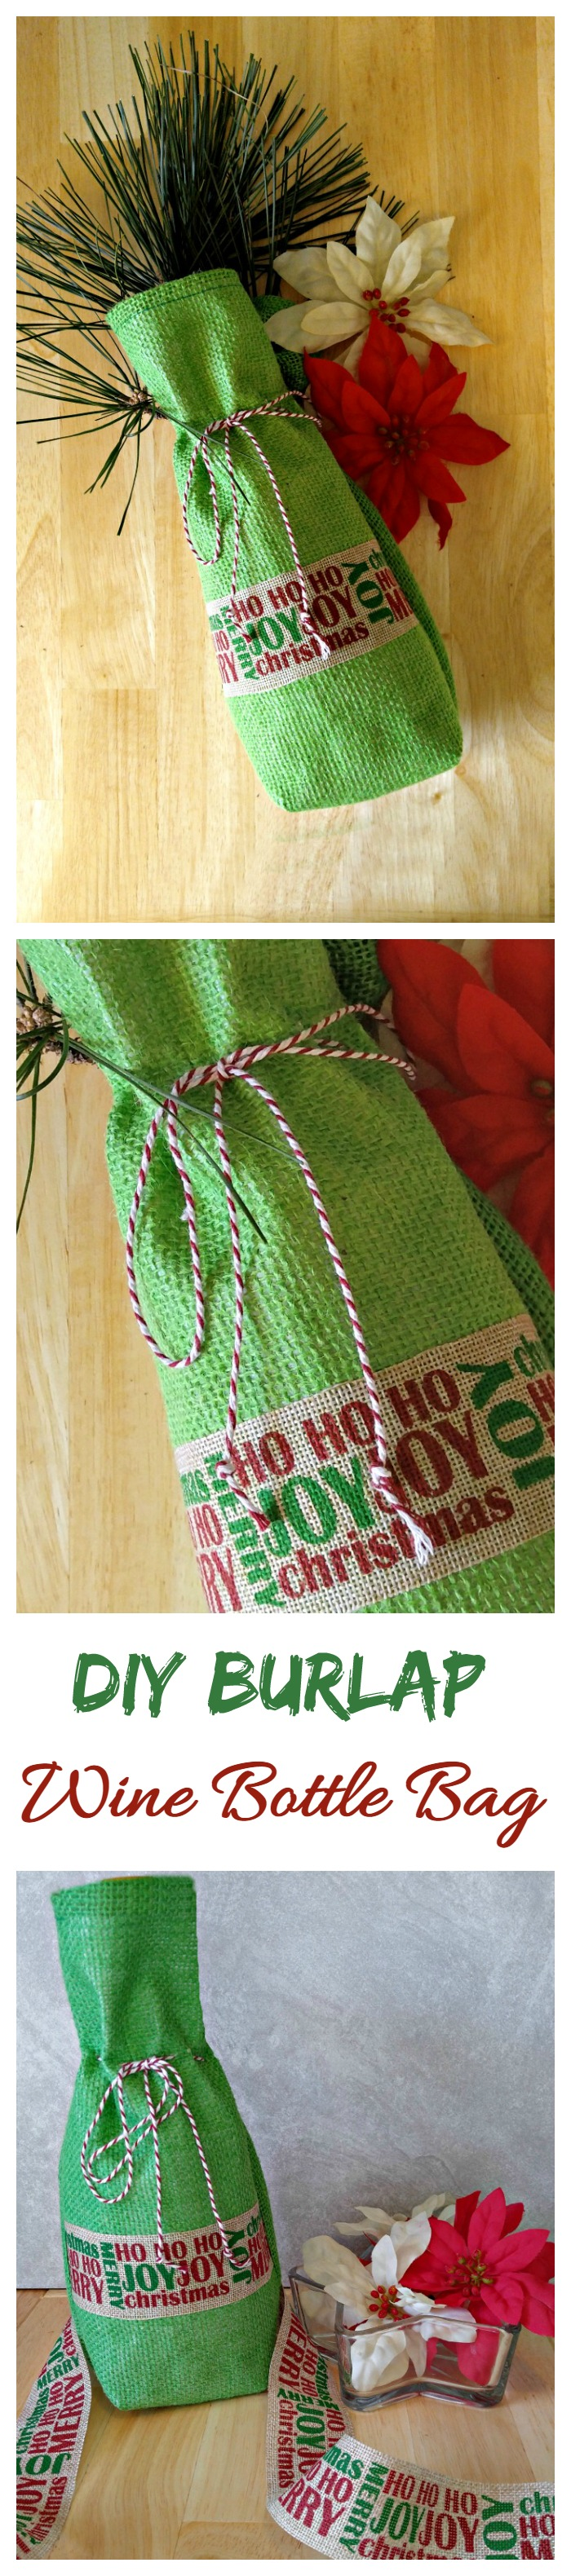 Msg 4 21+ This DIY burlap wine bottle bag is the prefect way to wrap your favorite bottle of Sutter home family wine. #SutterHomeForTheHolidays #ad